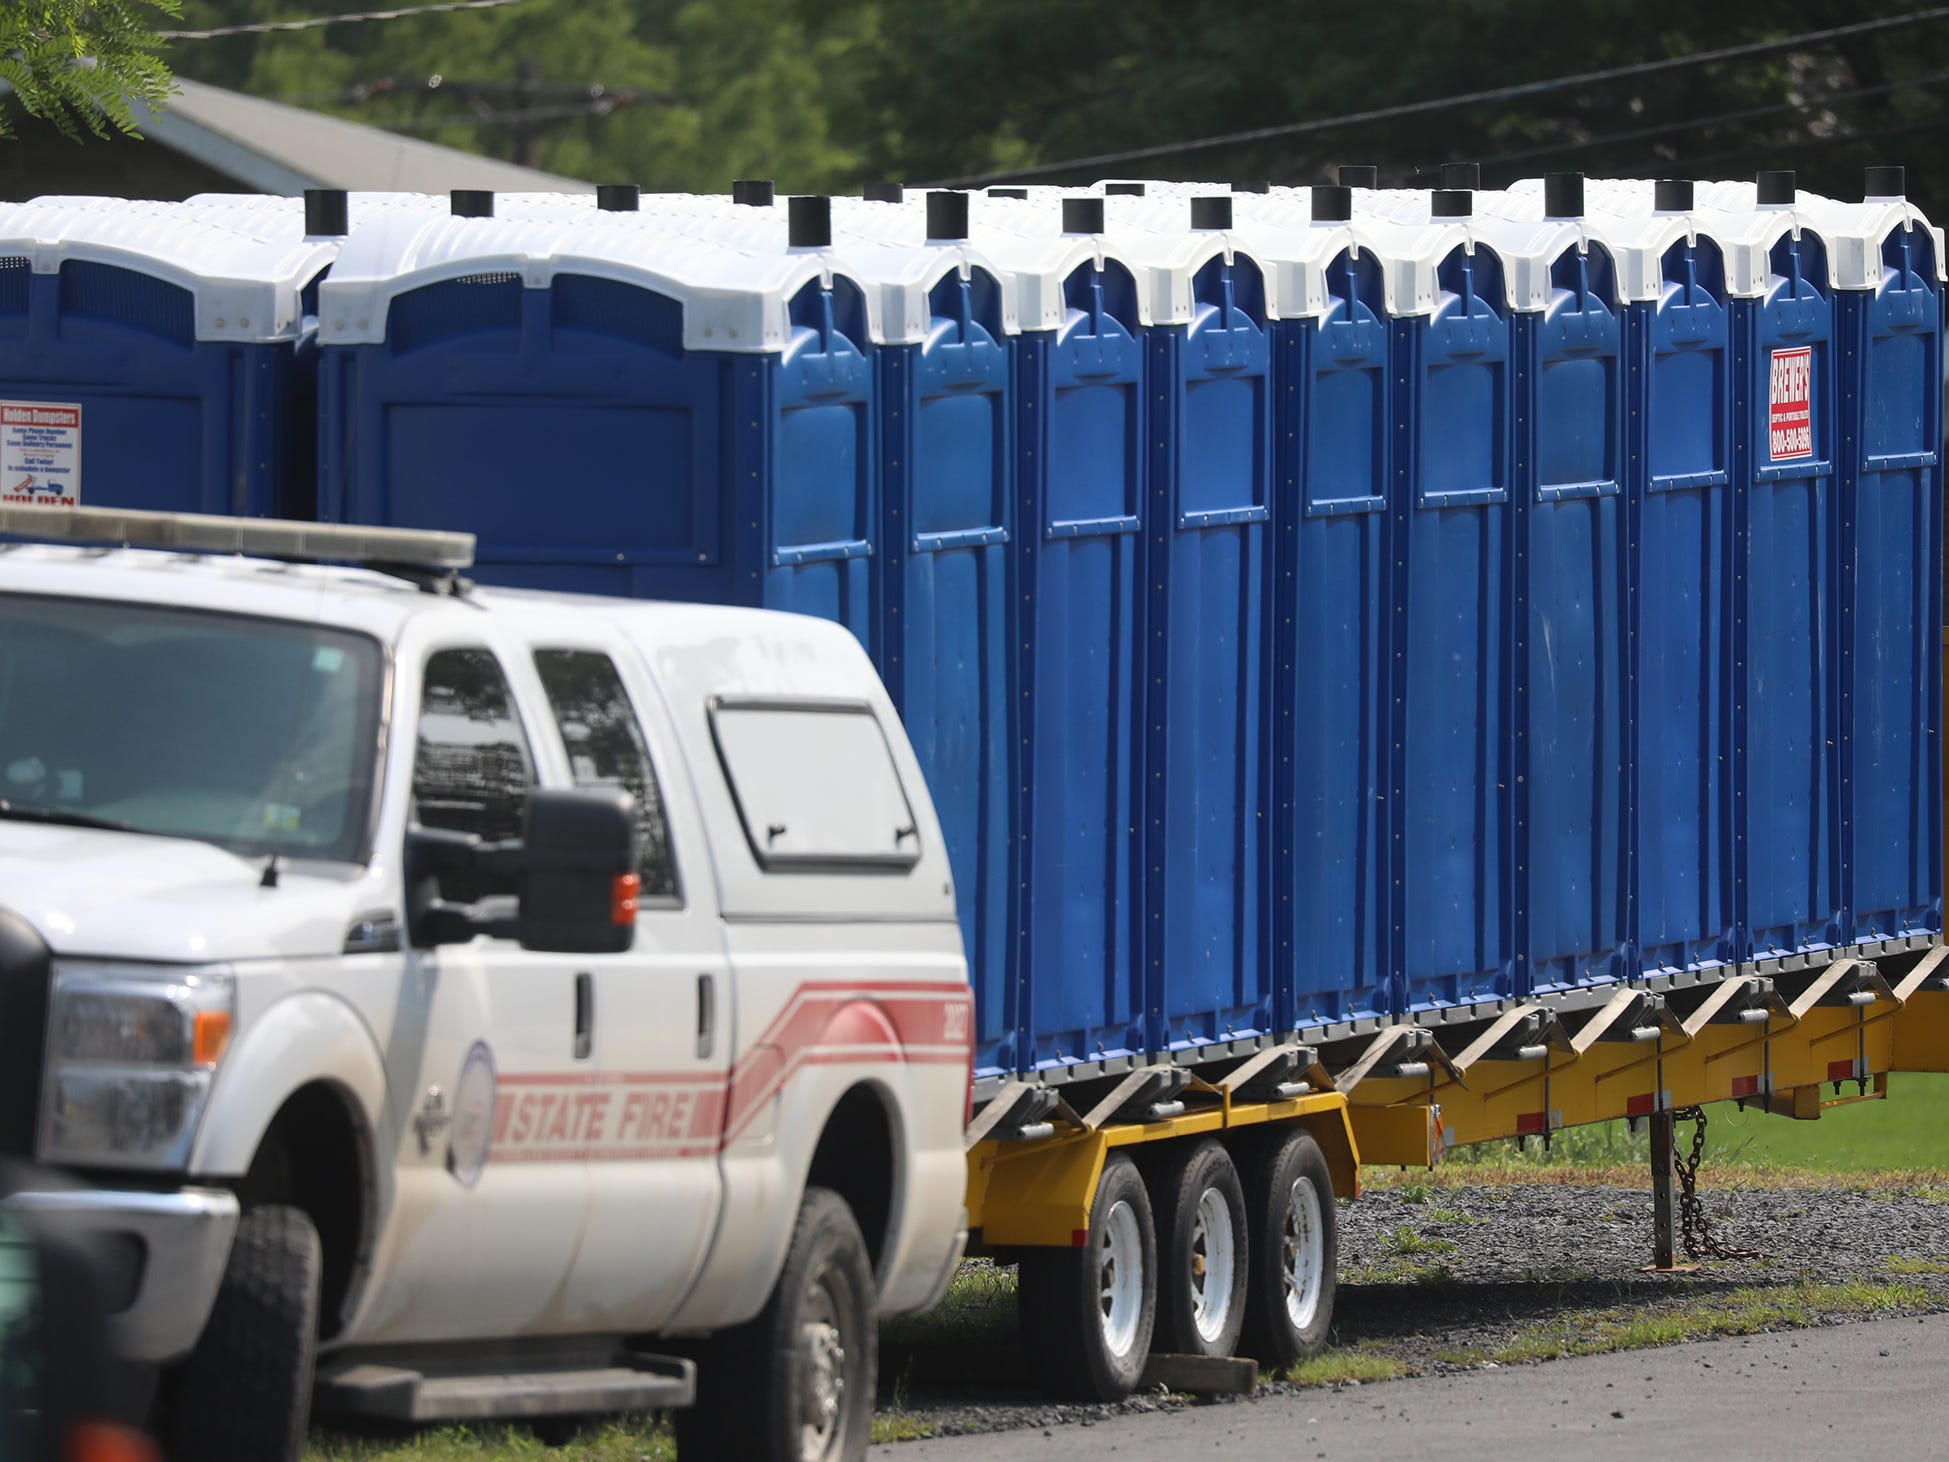 Portable bathrooms wait for deployment from Ovid Fire Department.